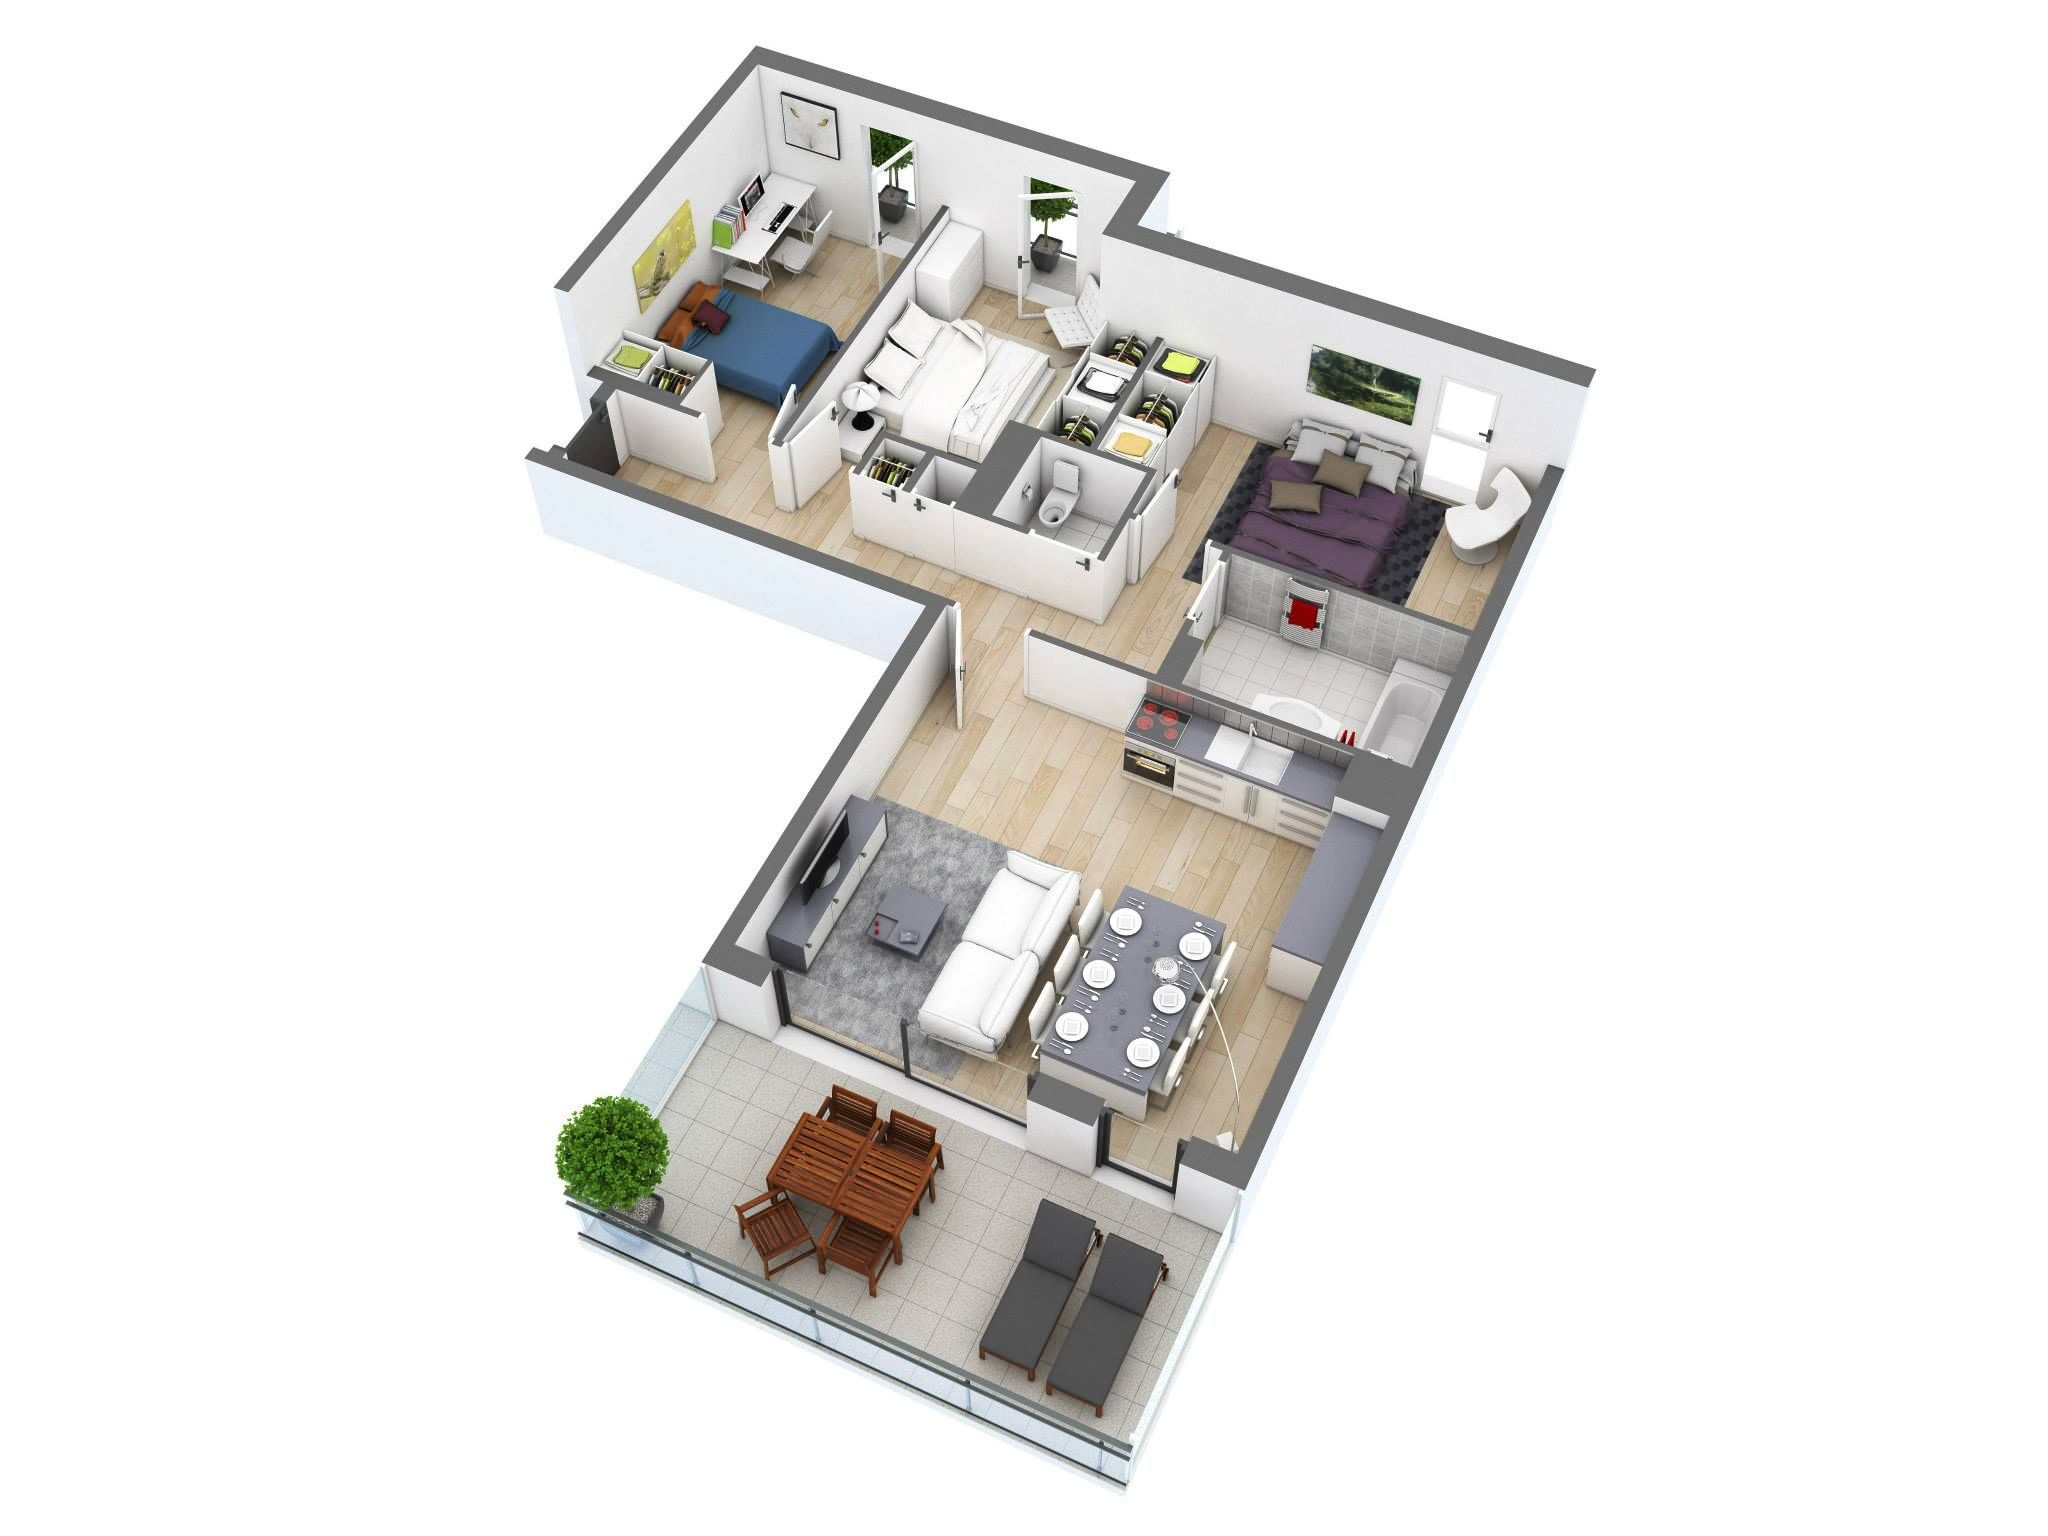 Understanding 3D Floor Plans And Finding The Right Layout For You – L-Shaped House Designs And Floor Plans